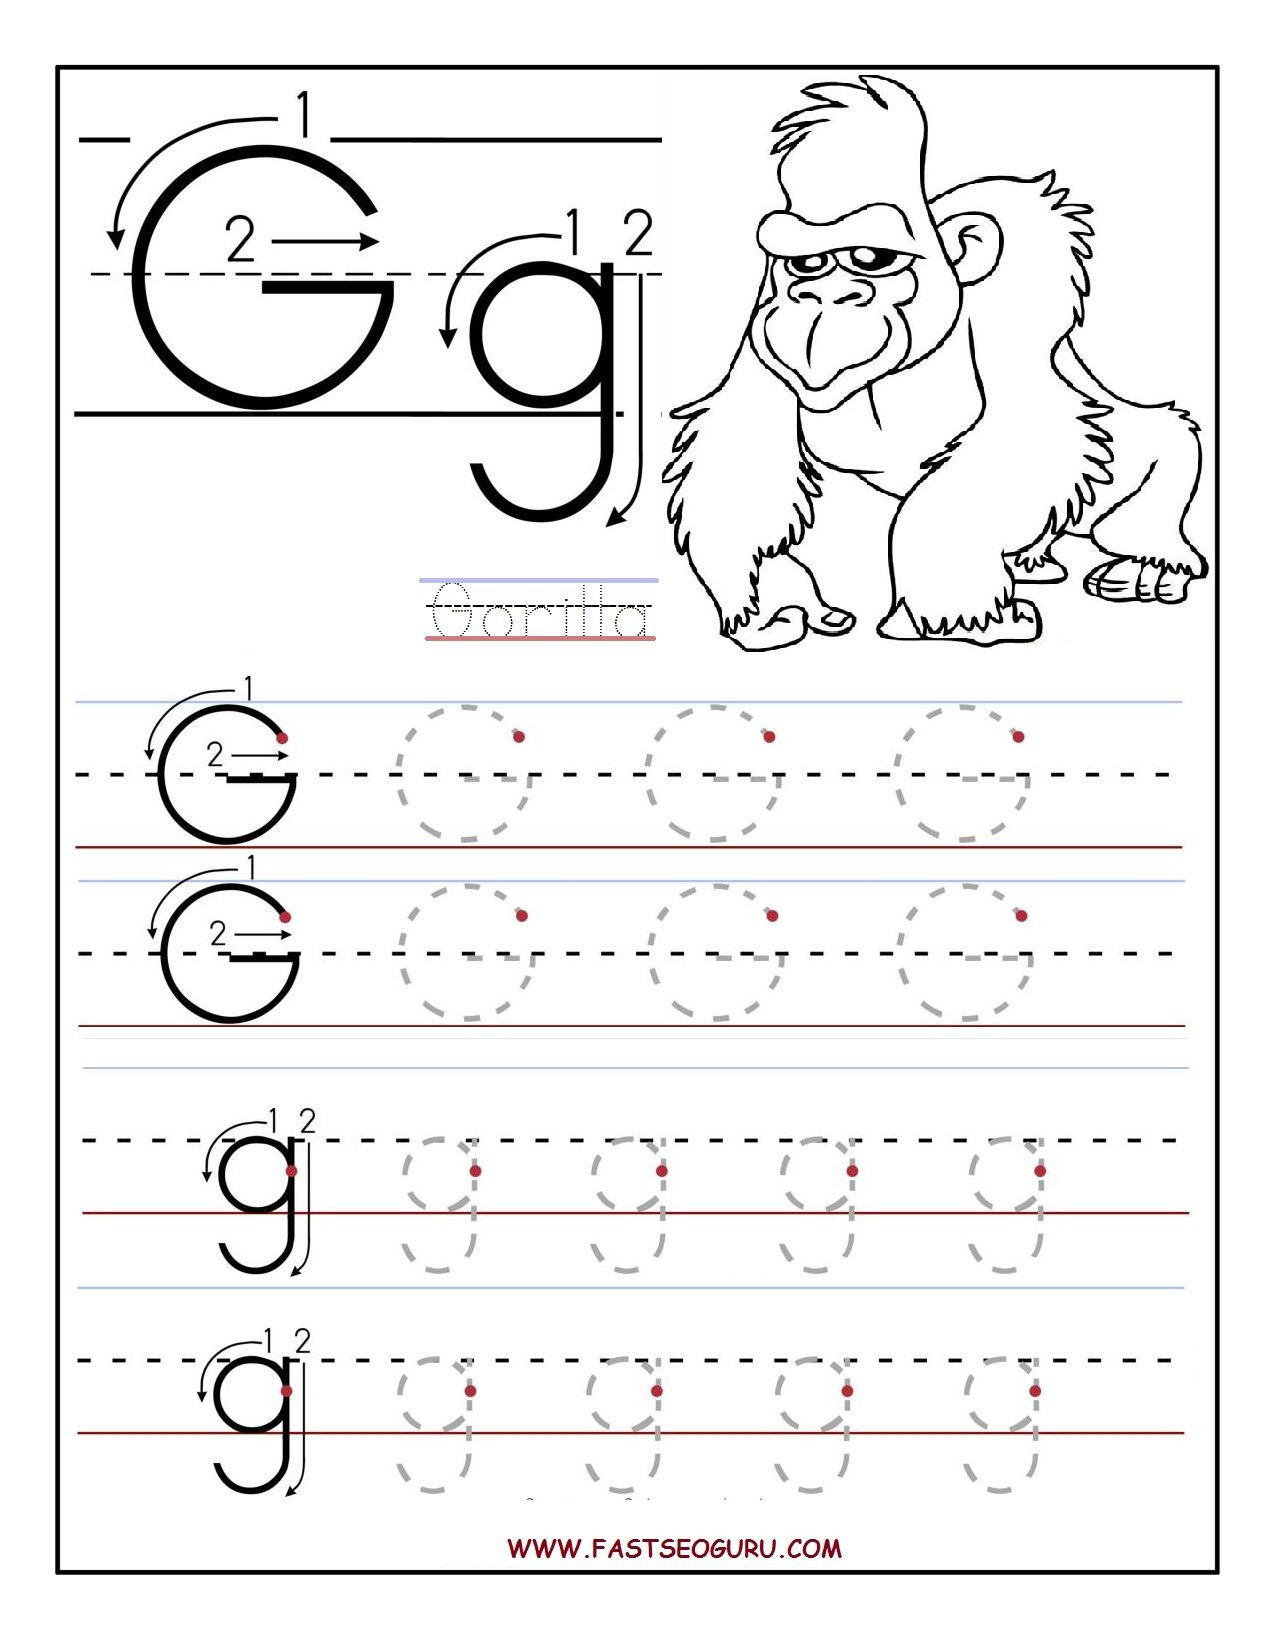 Letter G Worksheet Preschool Printable Letter G Tracing Worksheets for Preschool